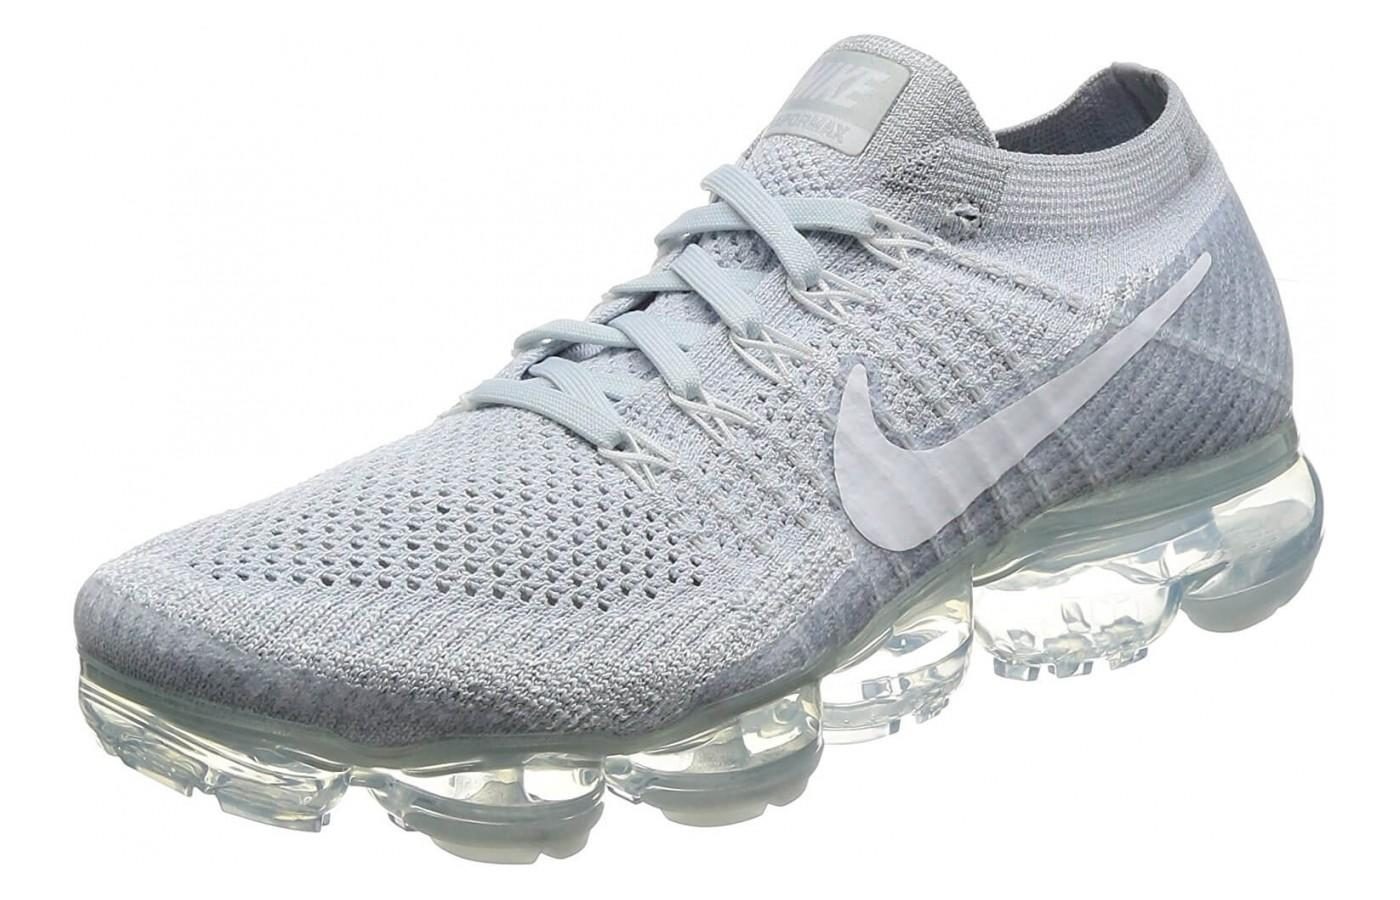 cd55897aa7 Nike Air Vapormax Flyknit. The platinum coloring and unique design help  this shoe stand out.